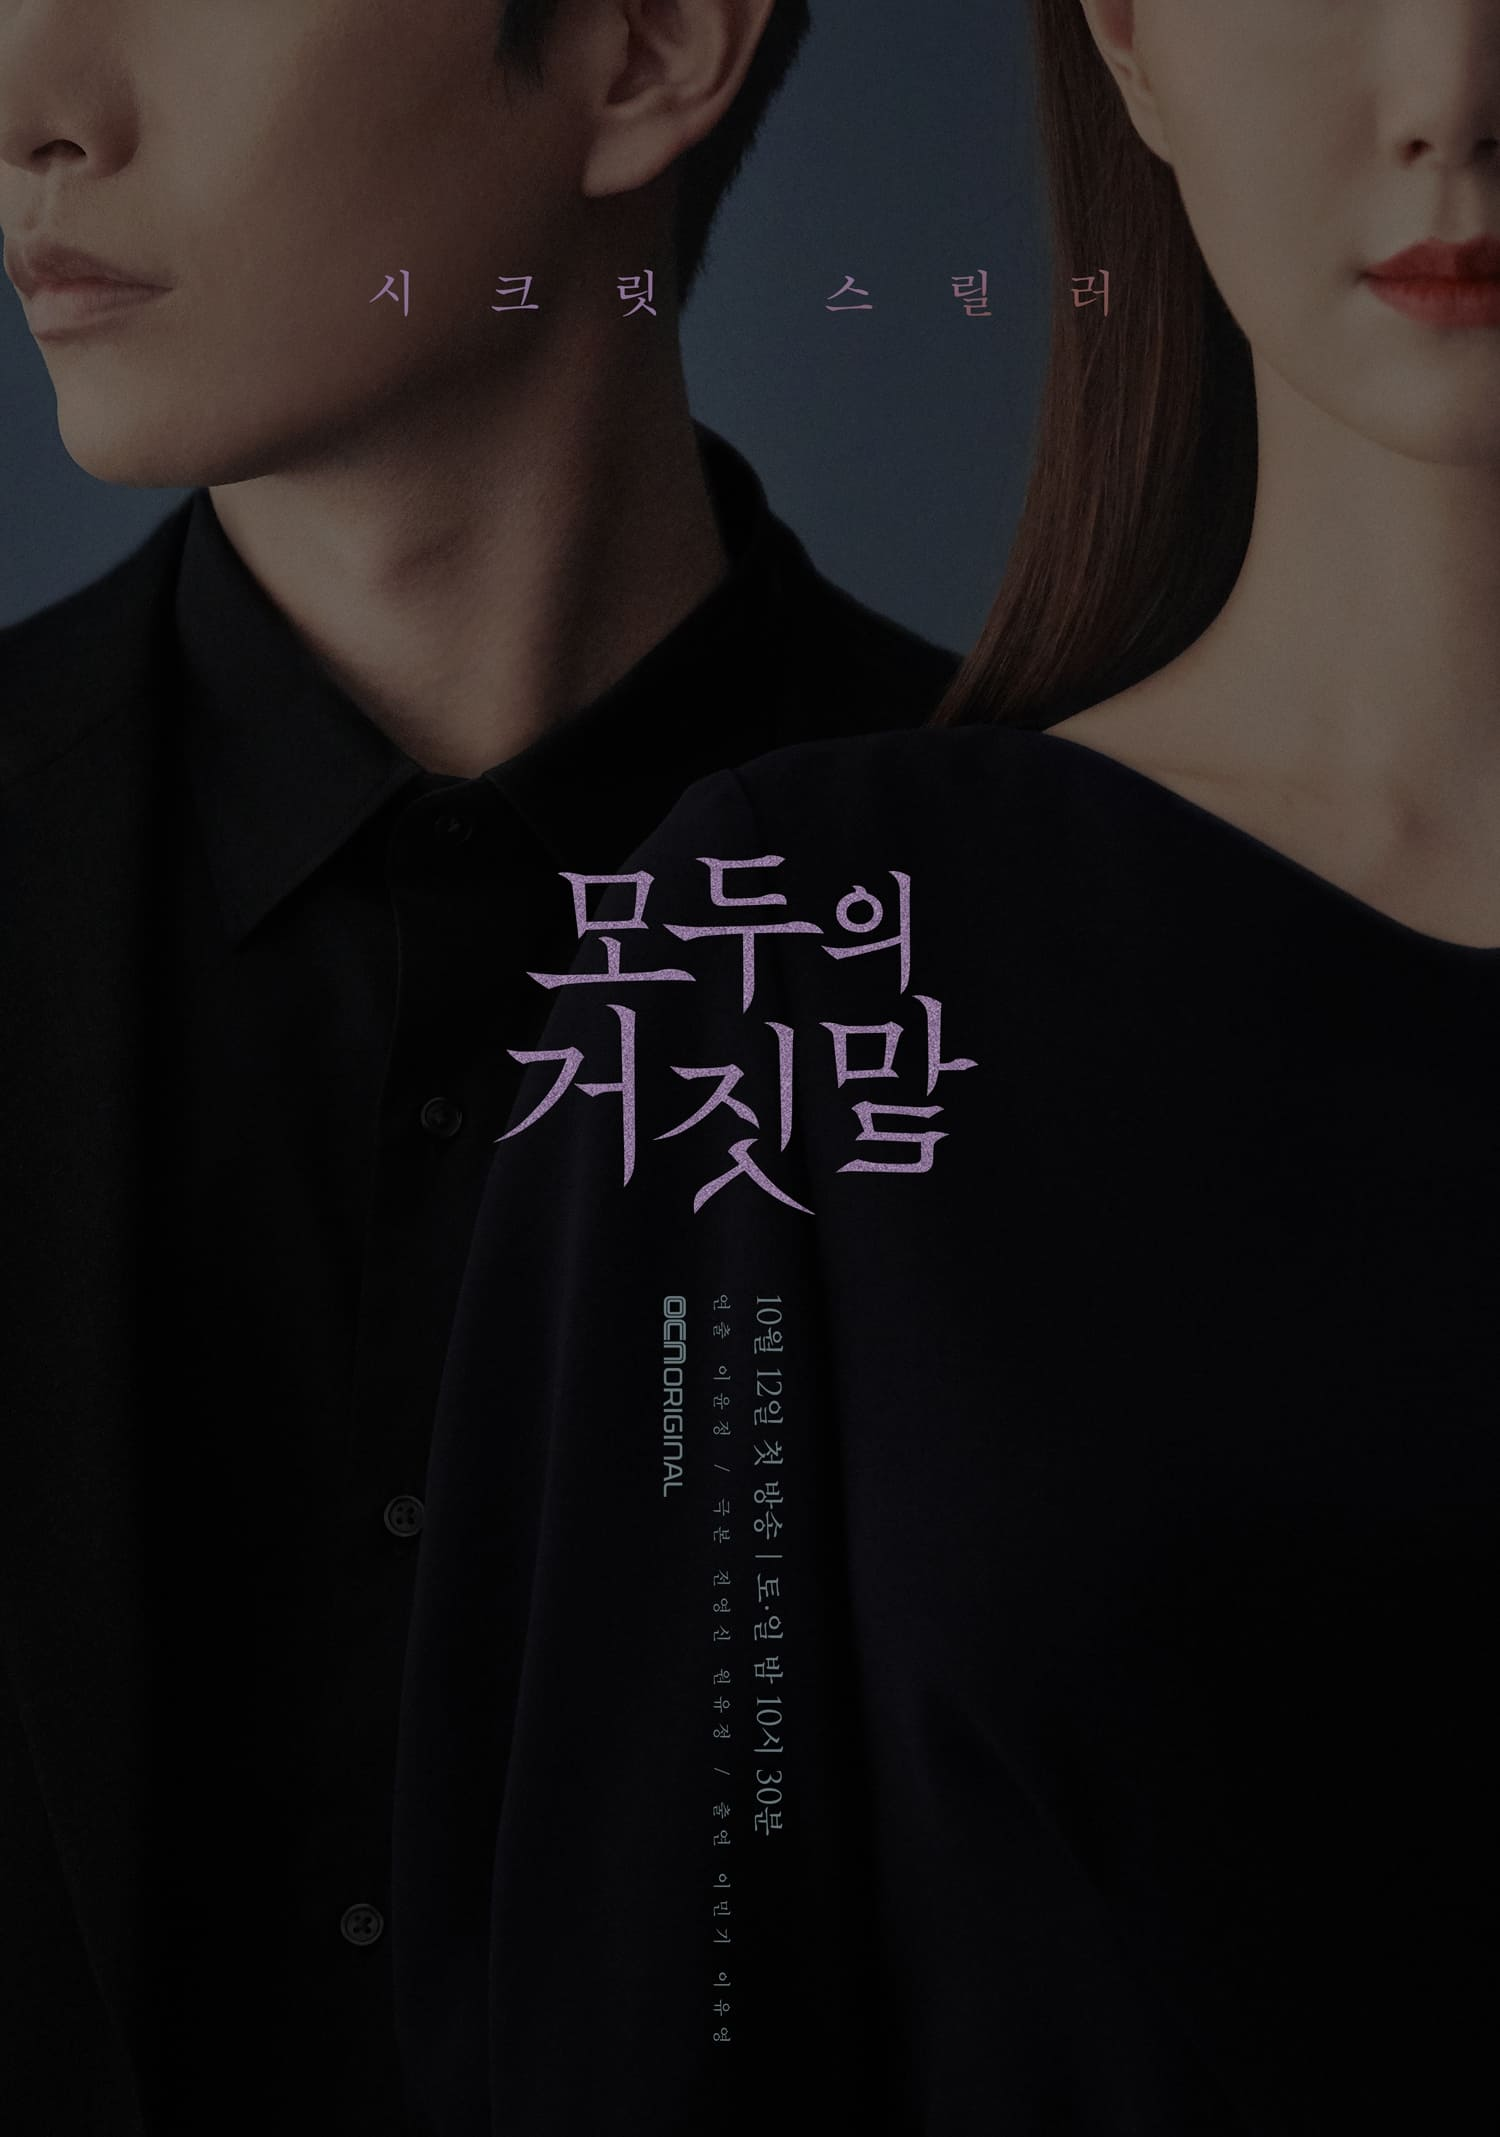 [Fans Teori] Misteri Dalam Drama The Lies Within